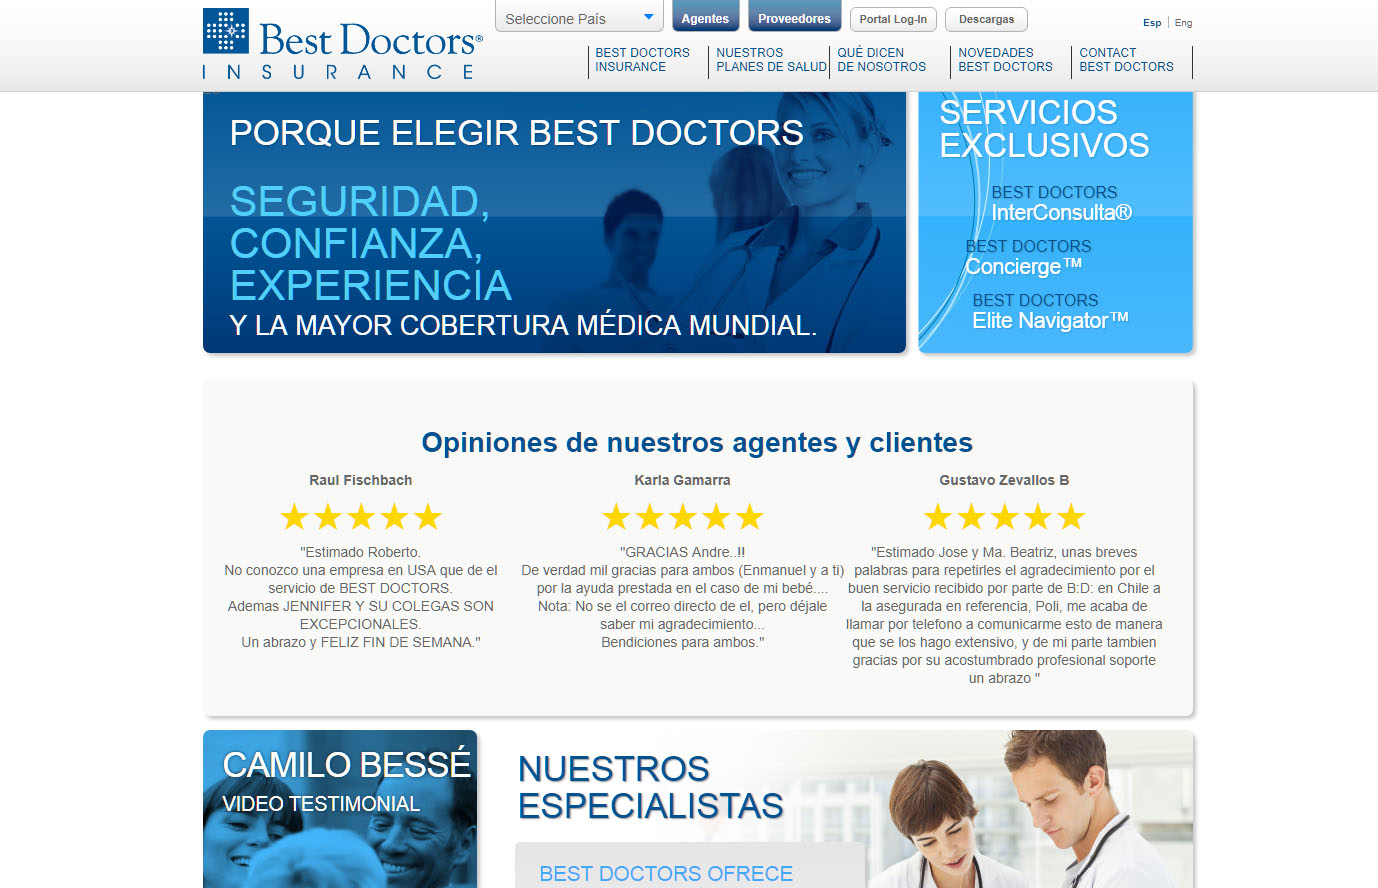 Best Doctors captura de pantalla